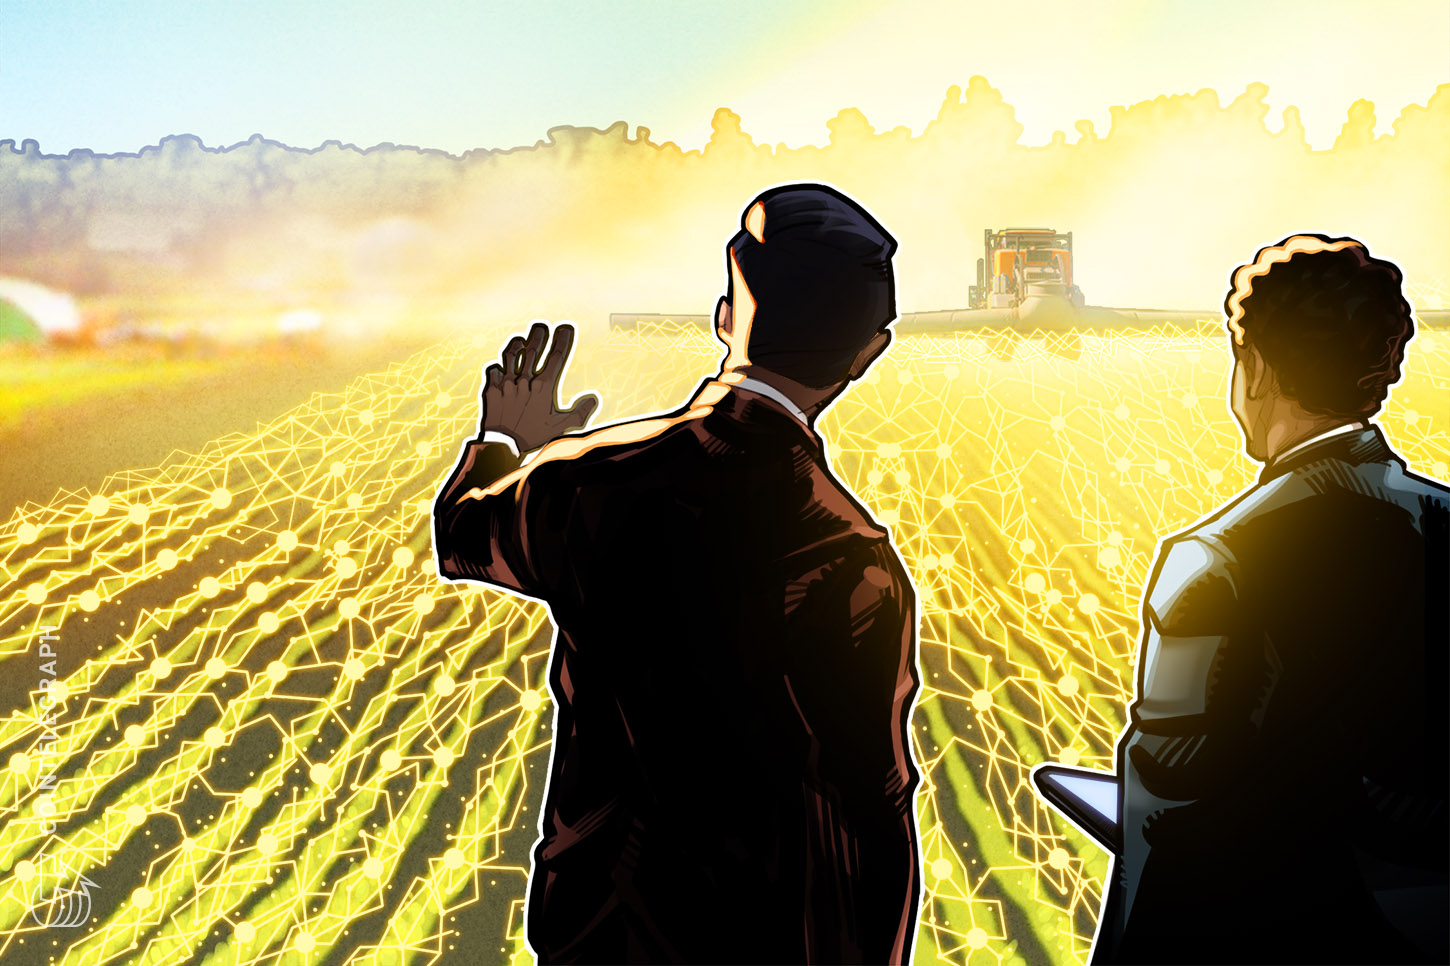 Etherisc onboards 17K Kenyan farmers covered by blockchain-based crop insurance